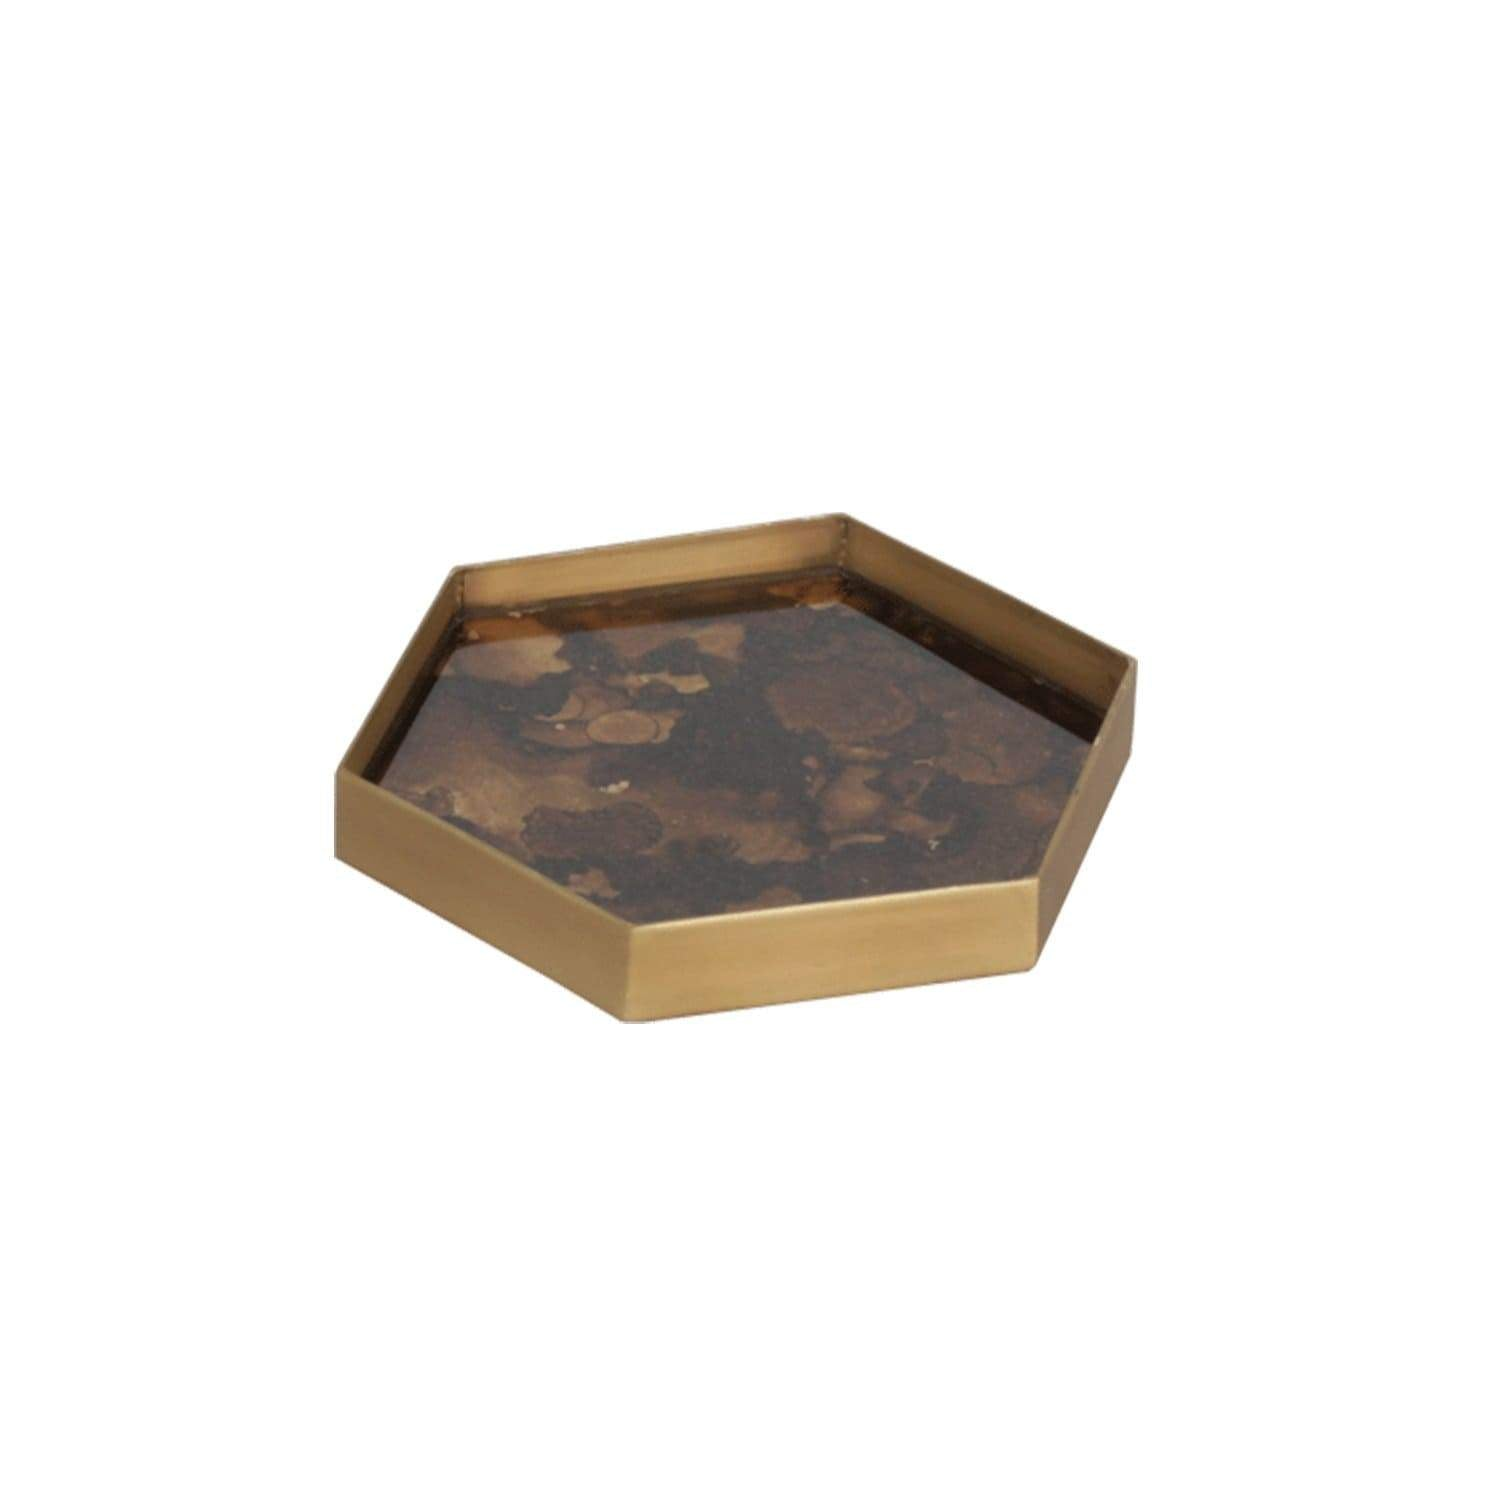 Tray Hexagon Tortoise Valet Tray